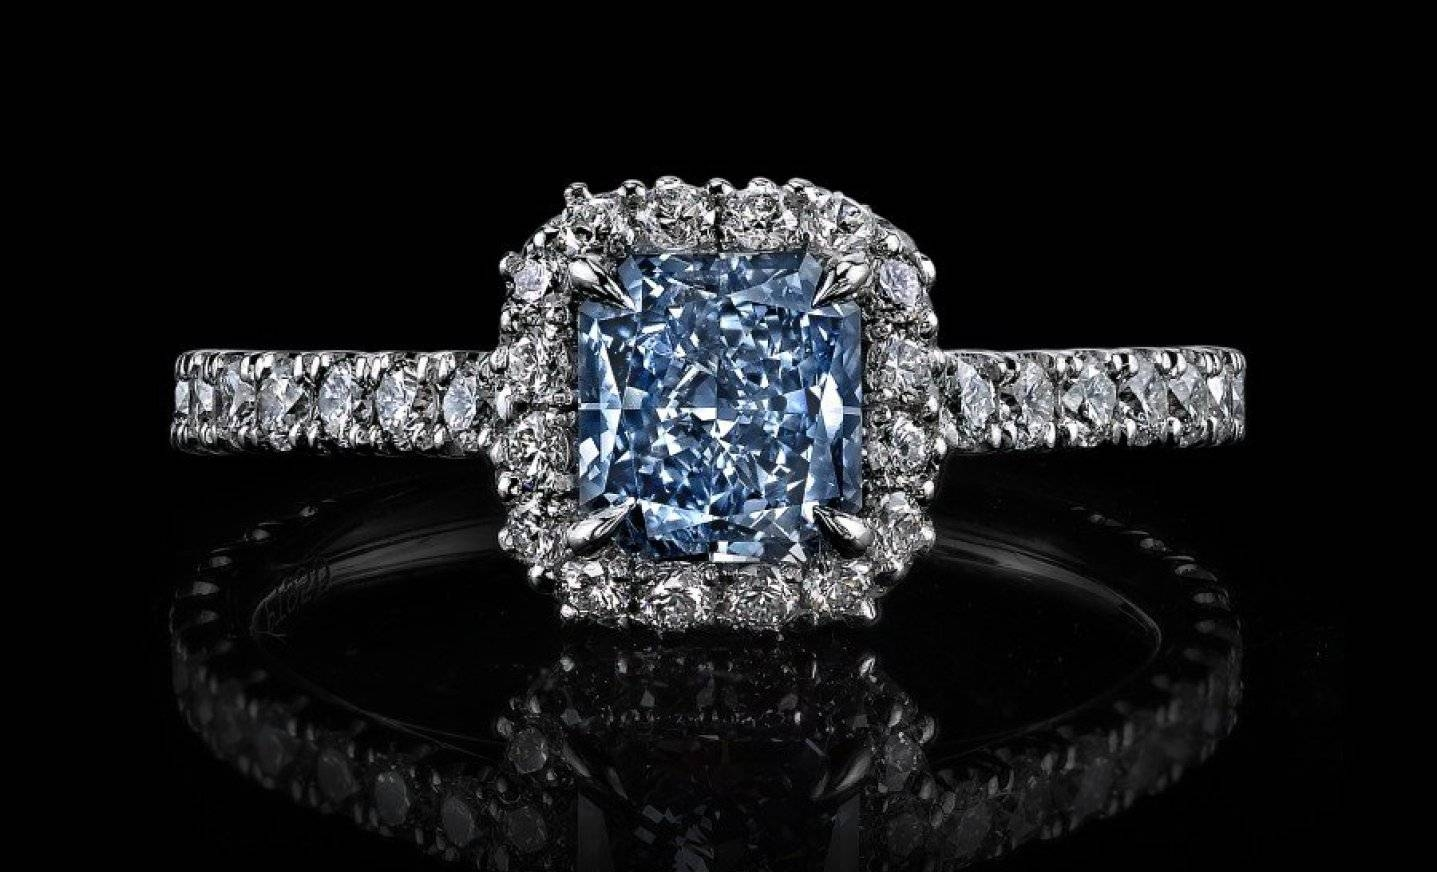 Engagement Rings : Endearing Blue Diamond Engagement Rings Zales Inside Zales Blue Diamond Engagement Rings (View 7 of 15)